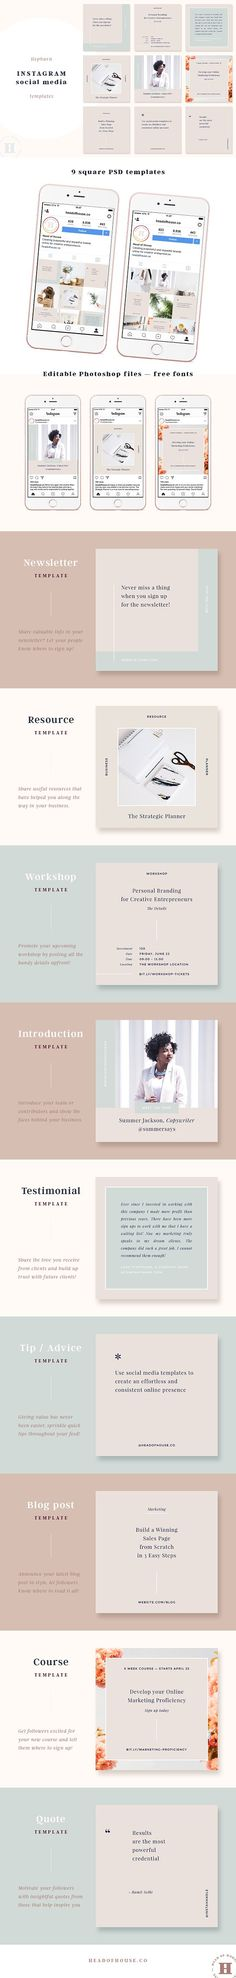 Hepburn Instagram Post Templates by Head of House on @creativemarket